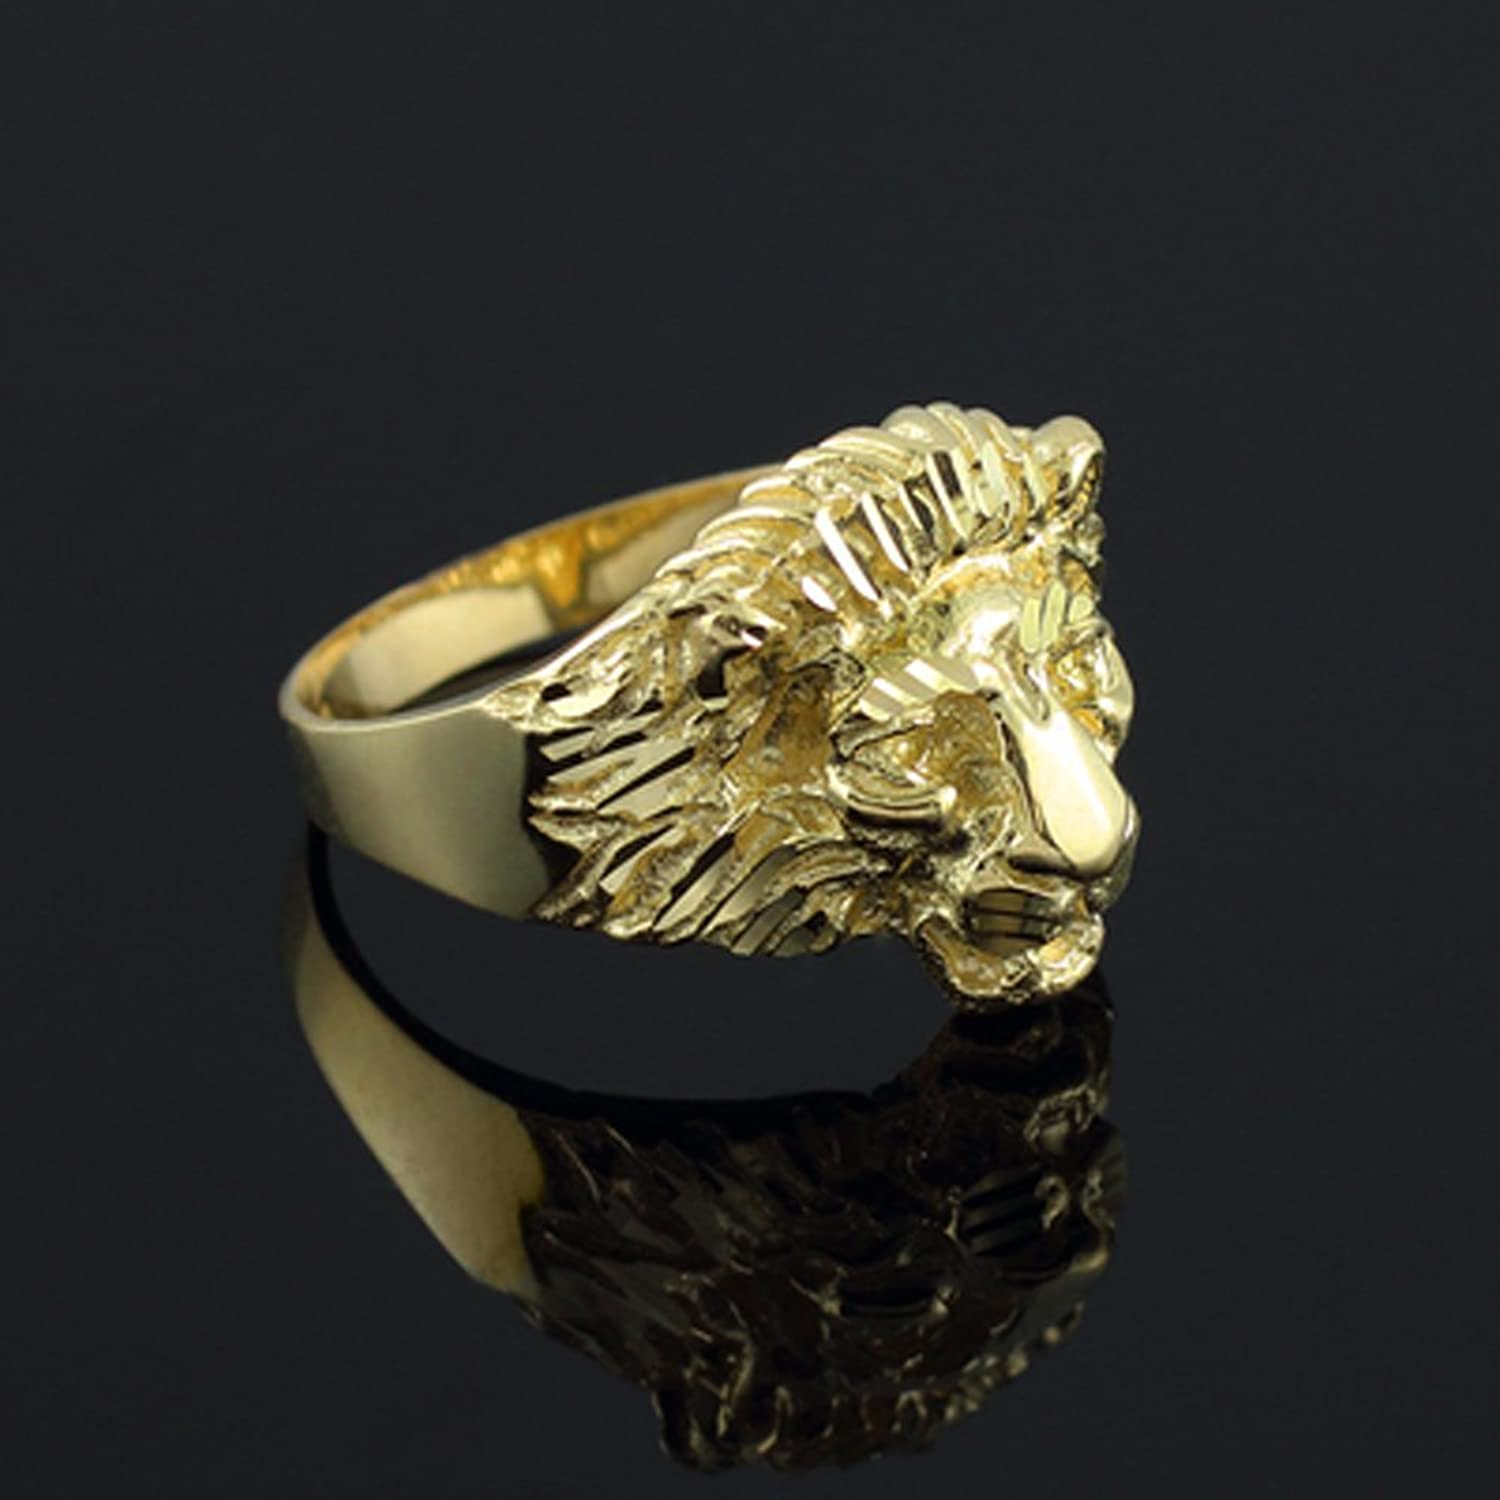 eagle for rings men head party fashion lion ring products vintage wedding punk new gift filled and male